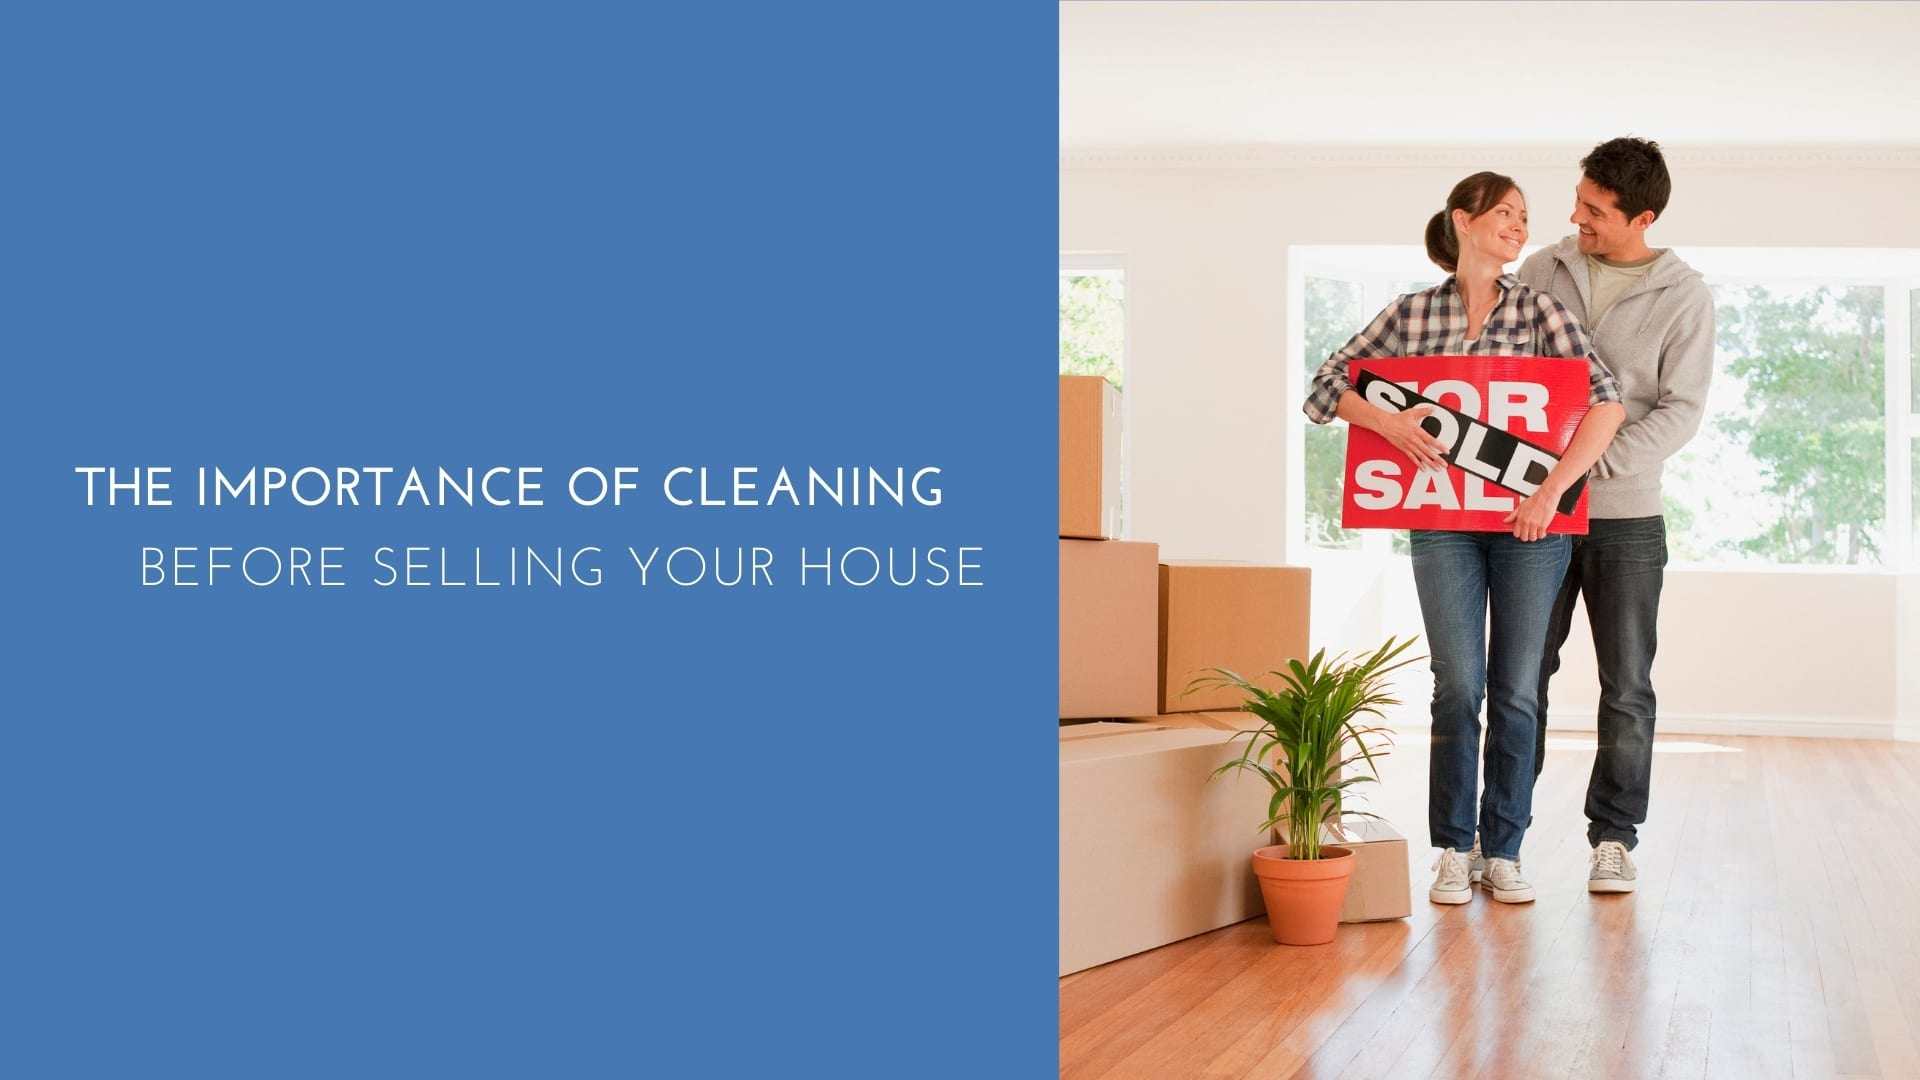 The importance of cleaning before selling your house